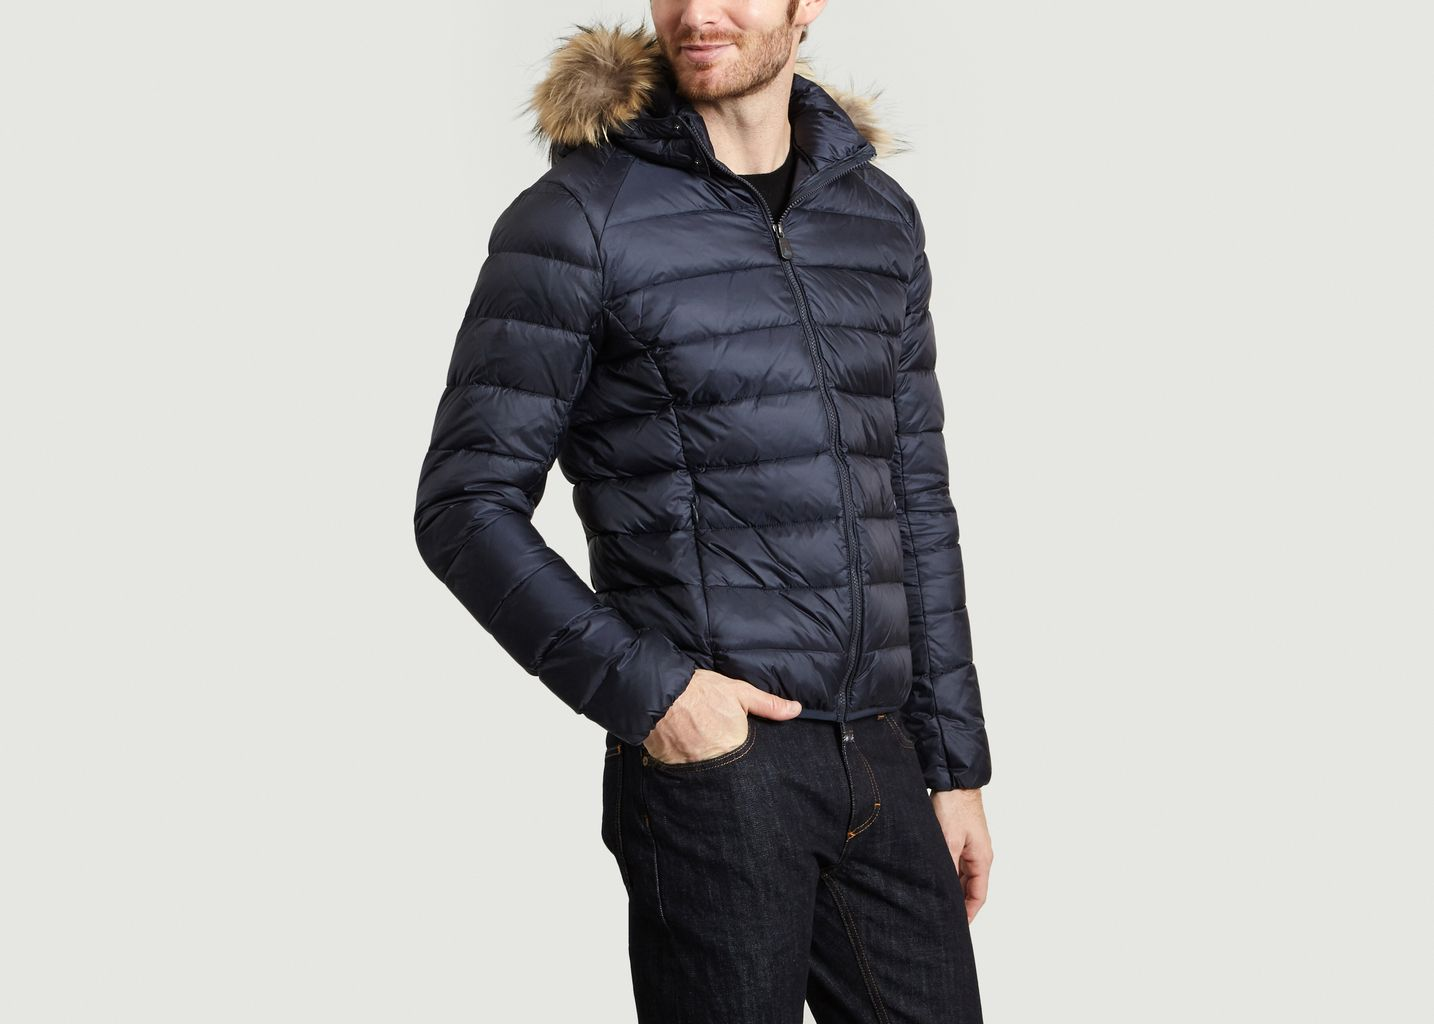 Doudoune Prestige Grand Froid Noir Just Over The Top | L'Exception